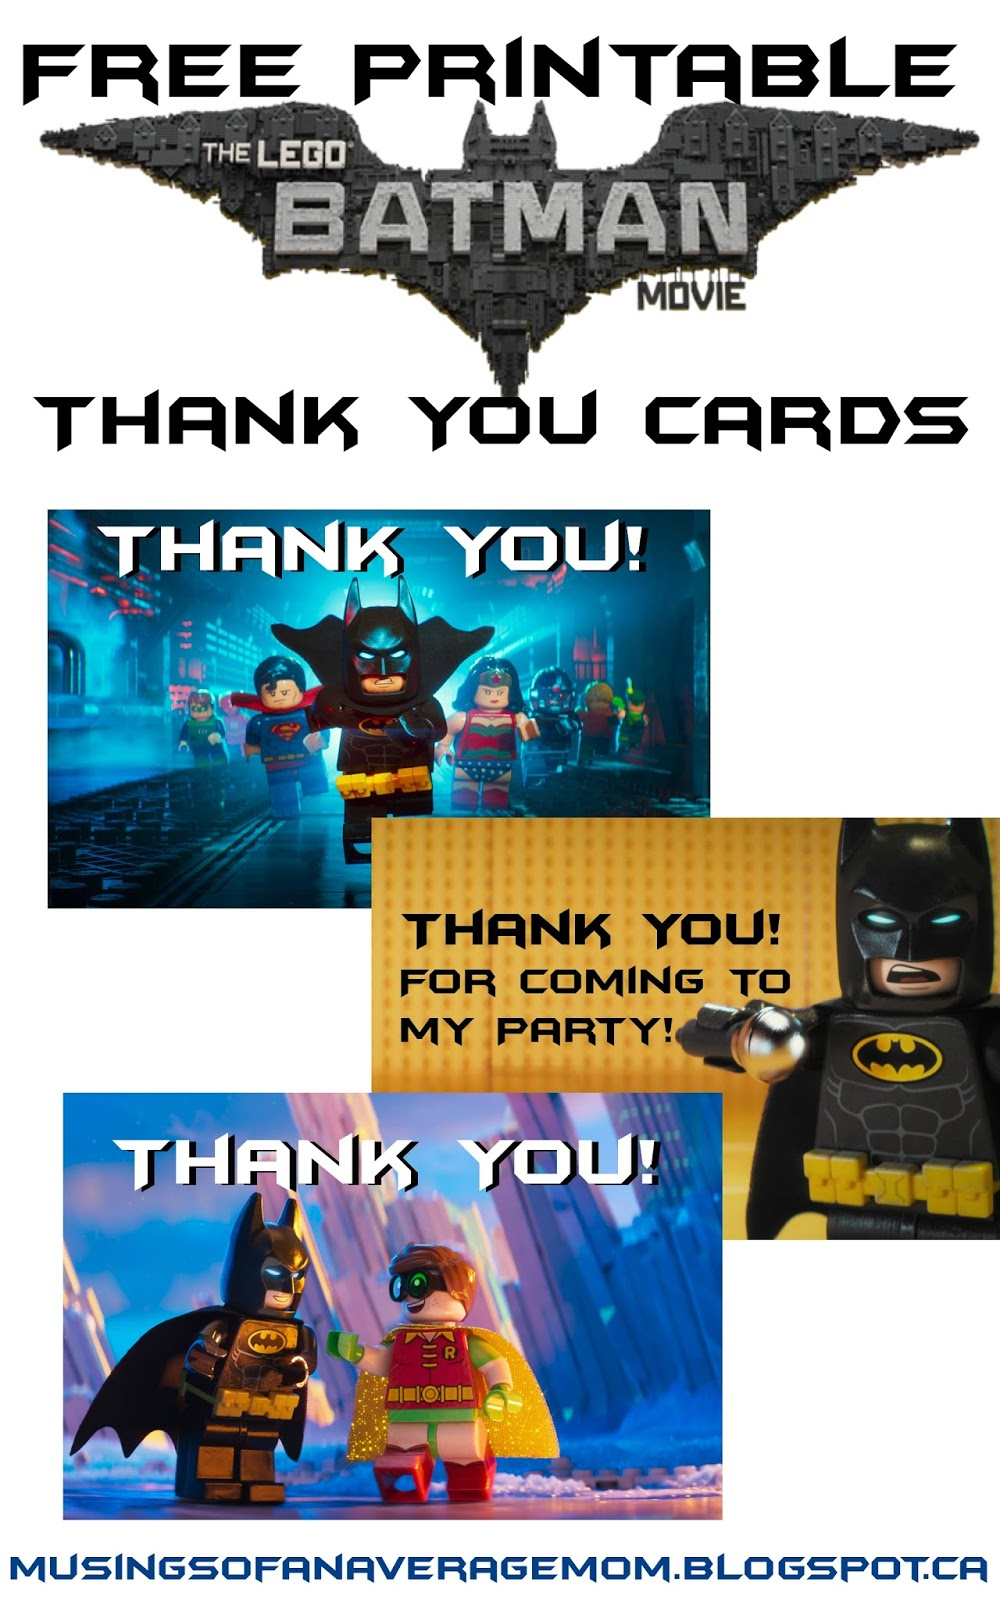 Musings Of An Average Mom: Lego Batman Thank You Cards - Free Printable Lego Batman